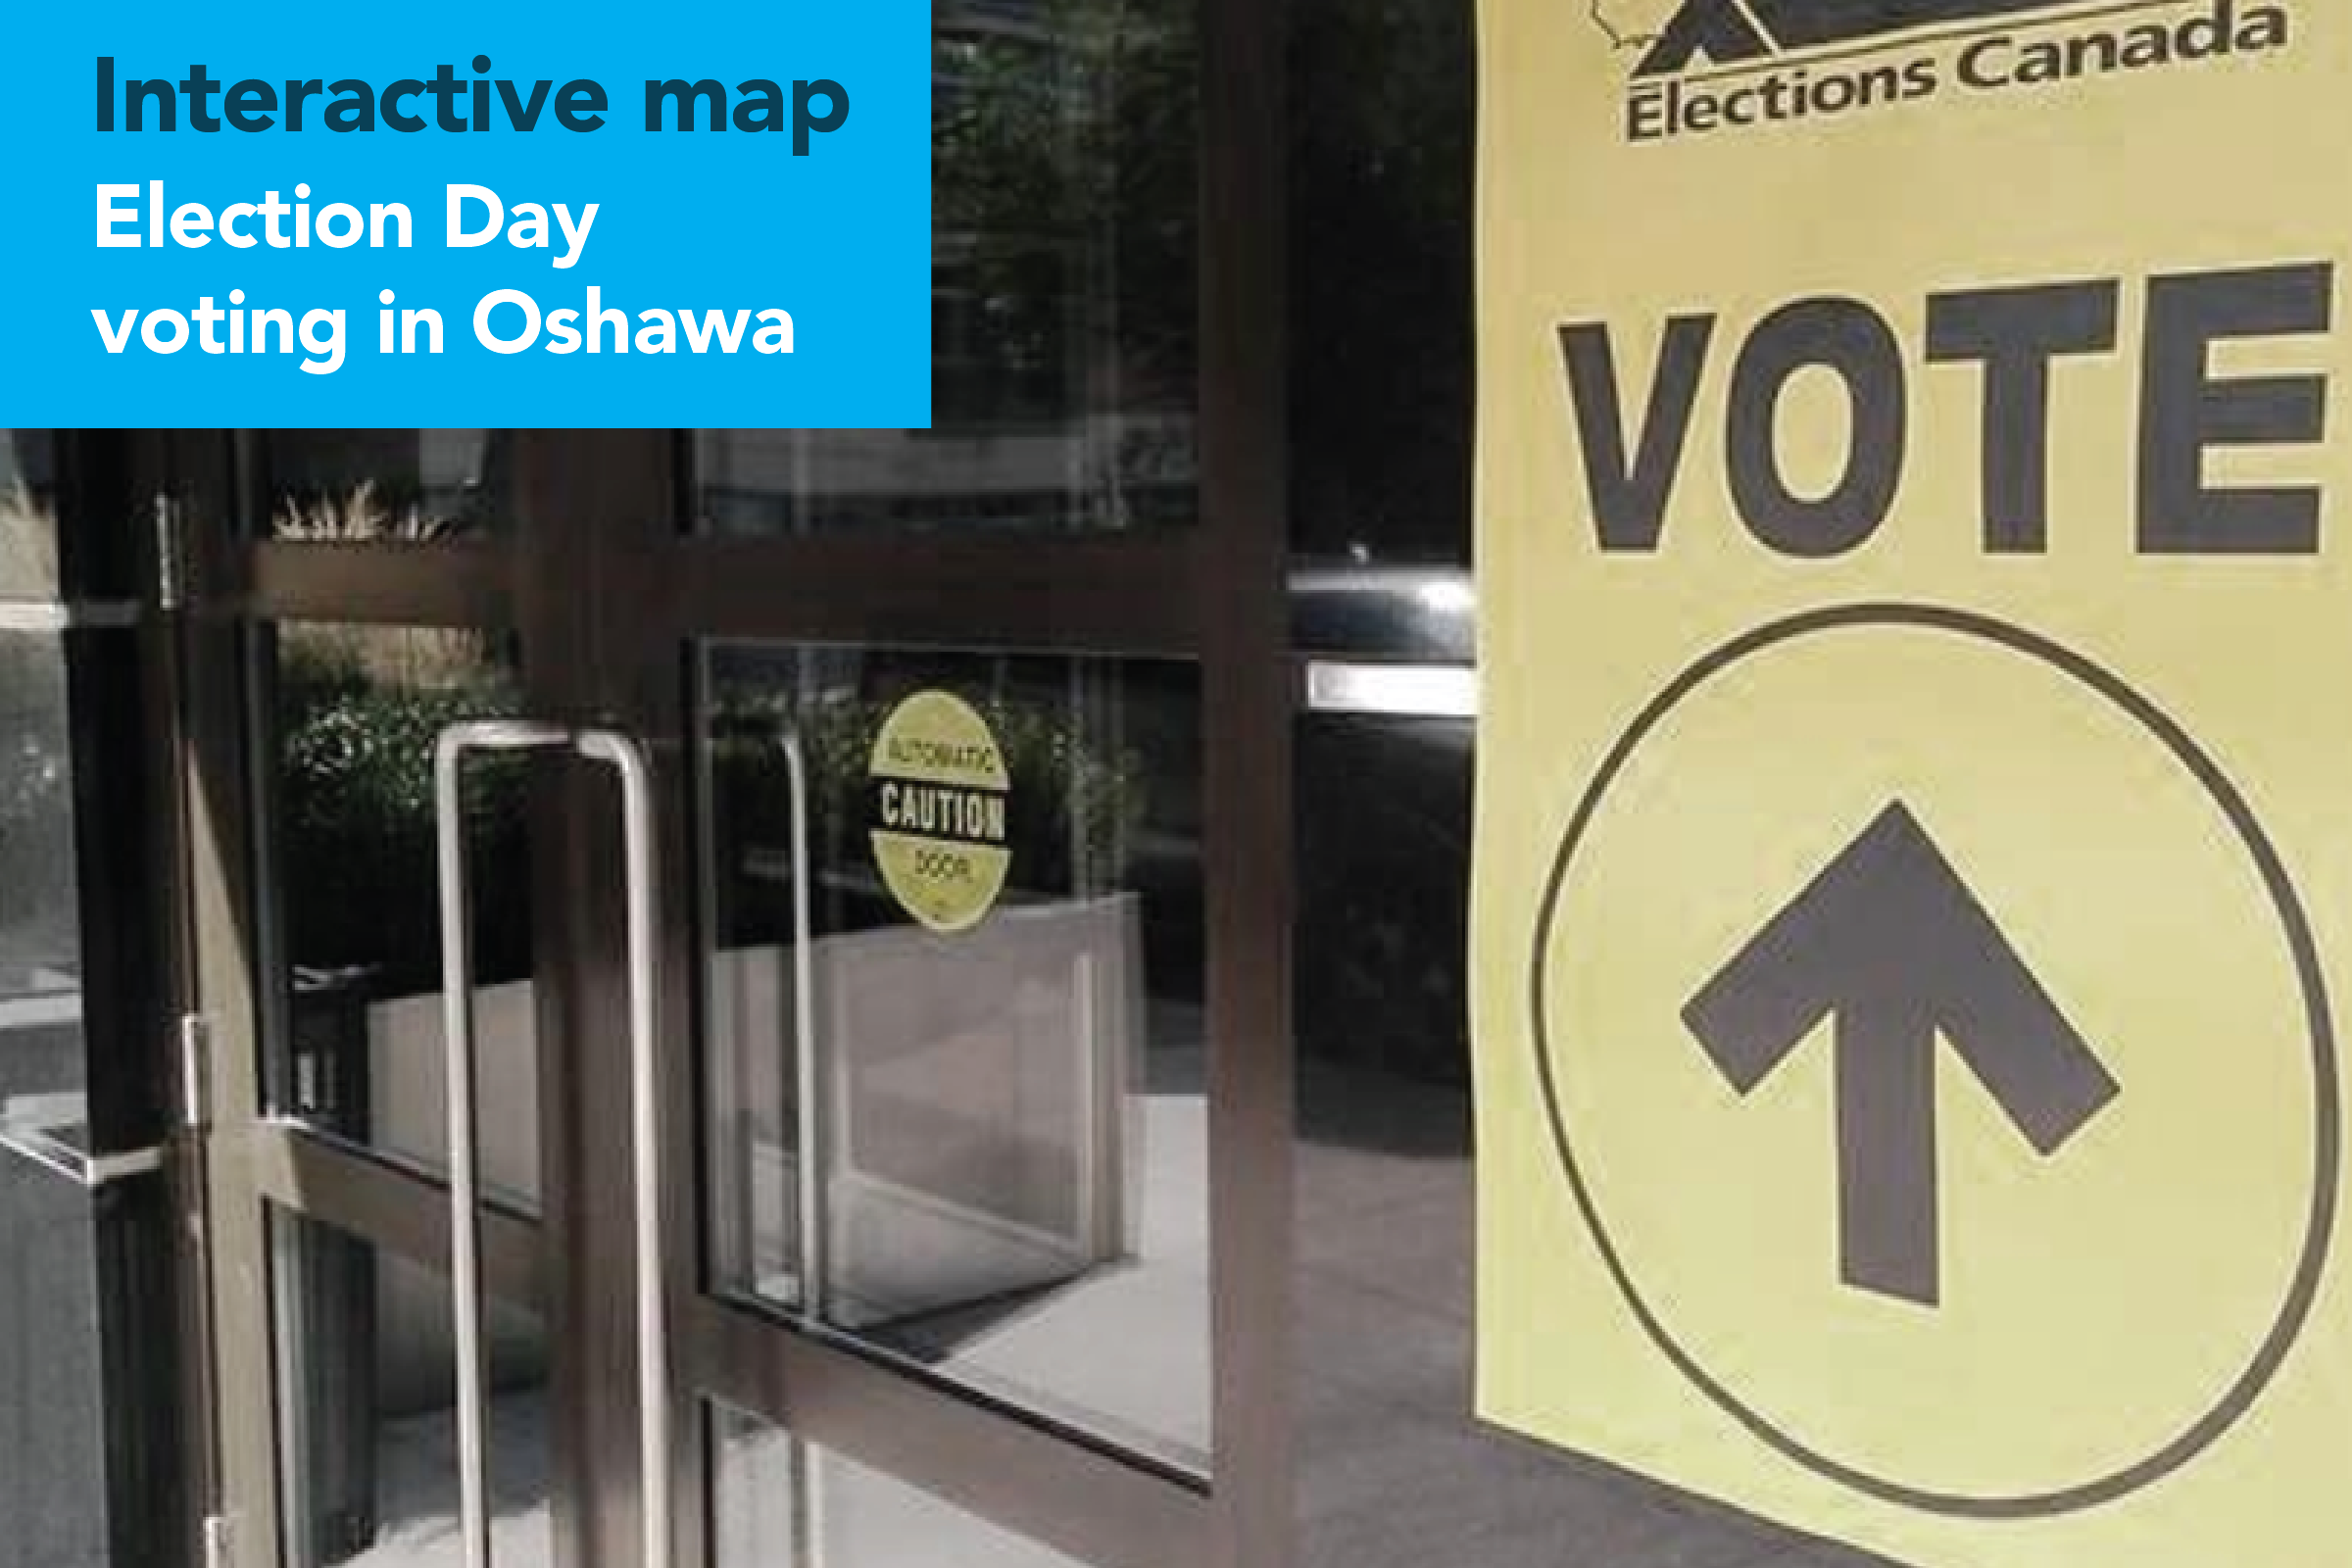 Vote Today in Oshawa